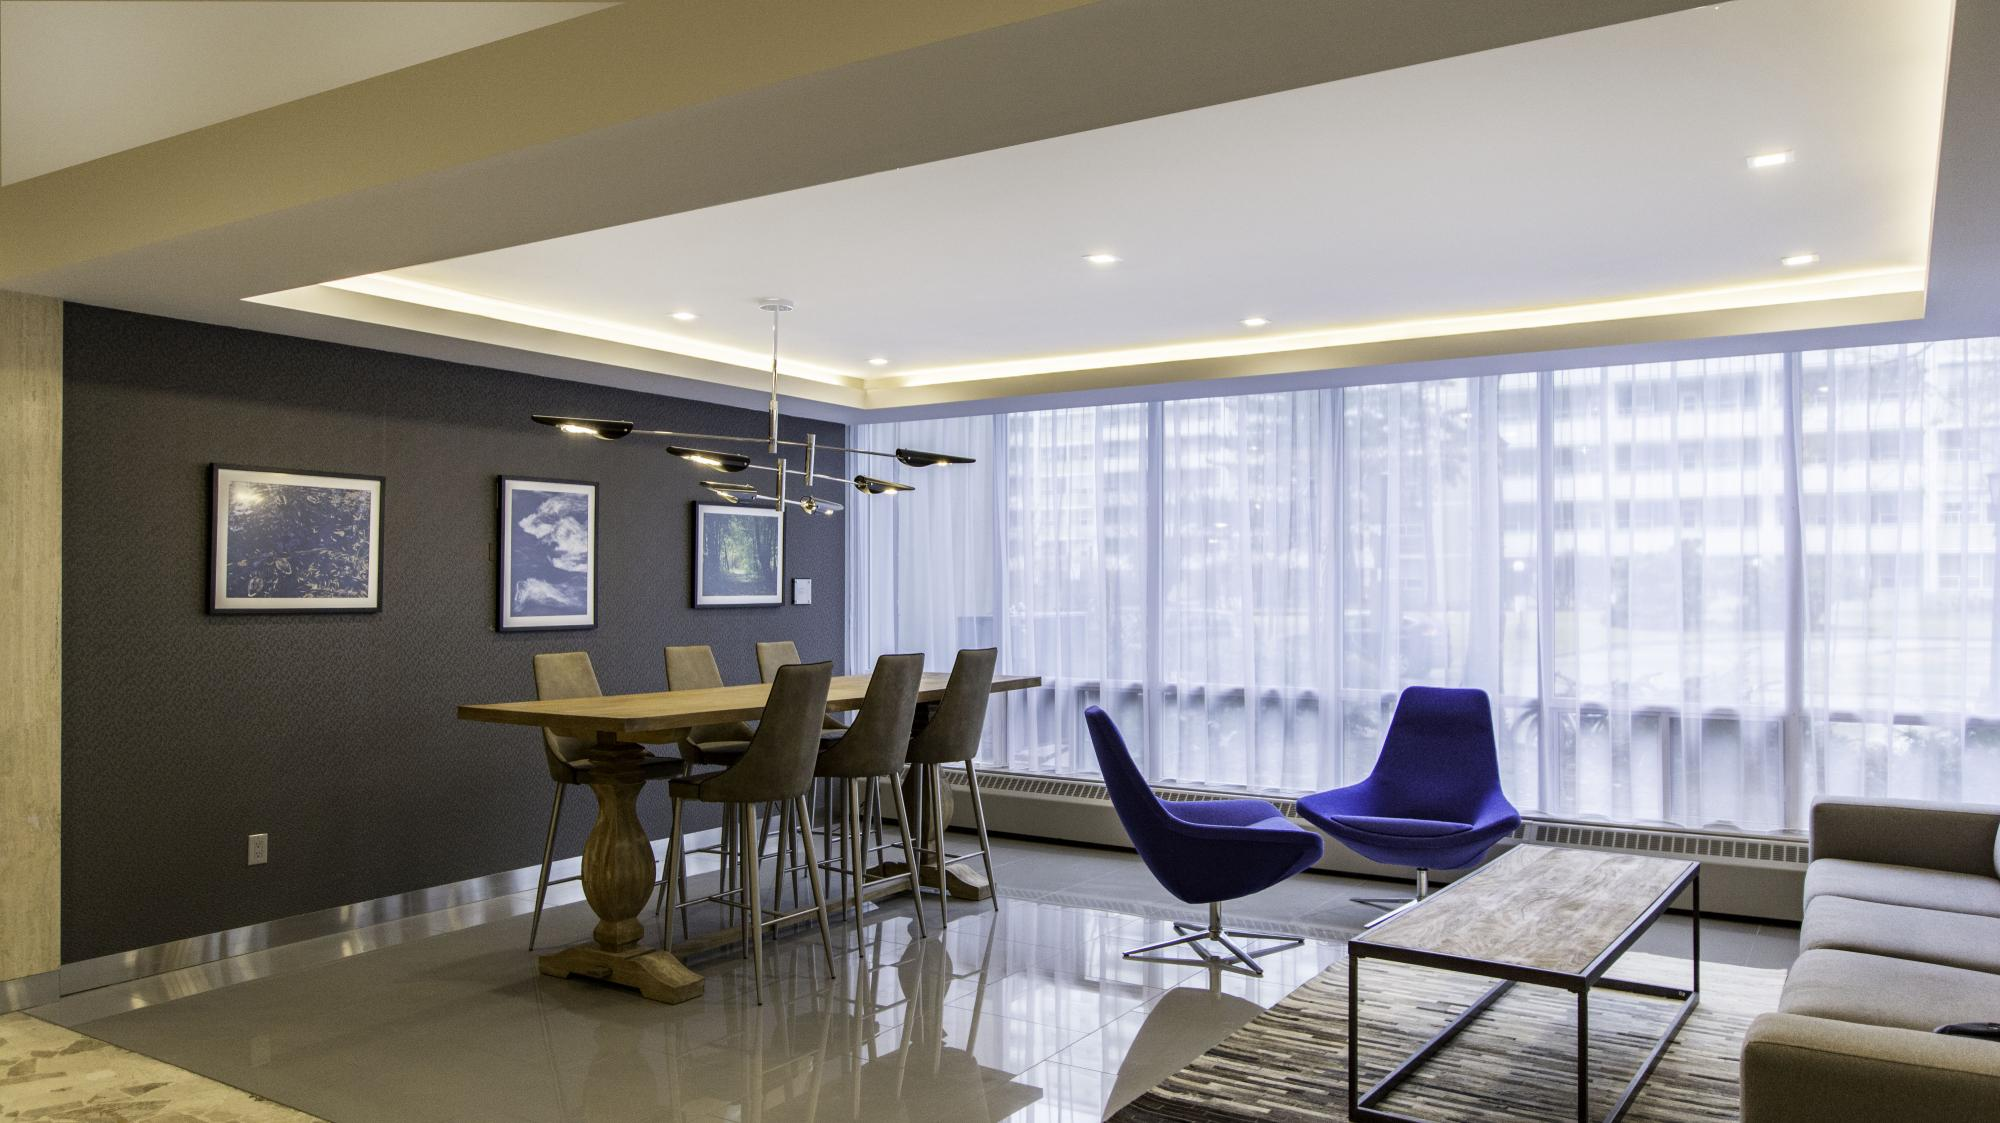 Lobby at an apartment building with blue chairs and a wooden table with high chairs surrounding it